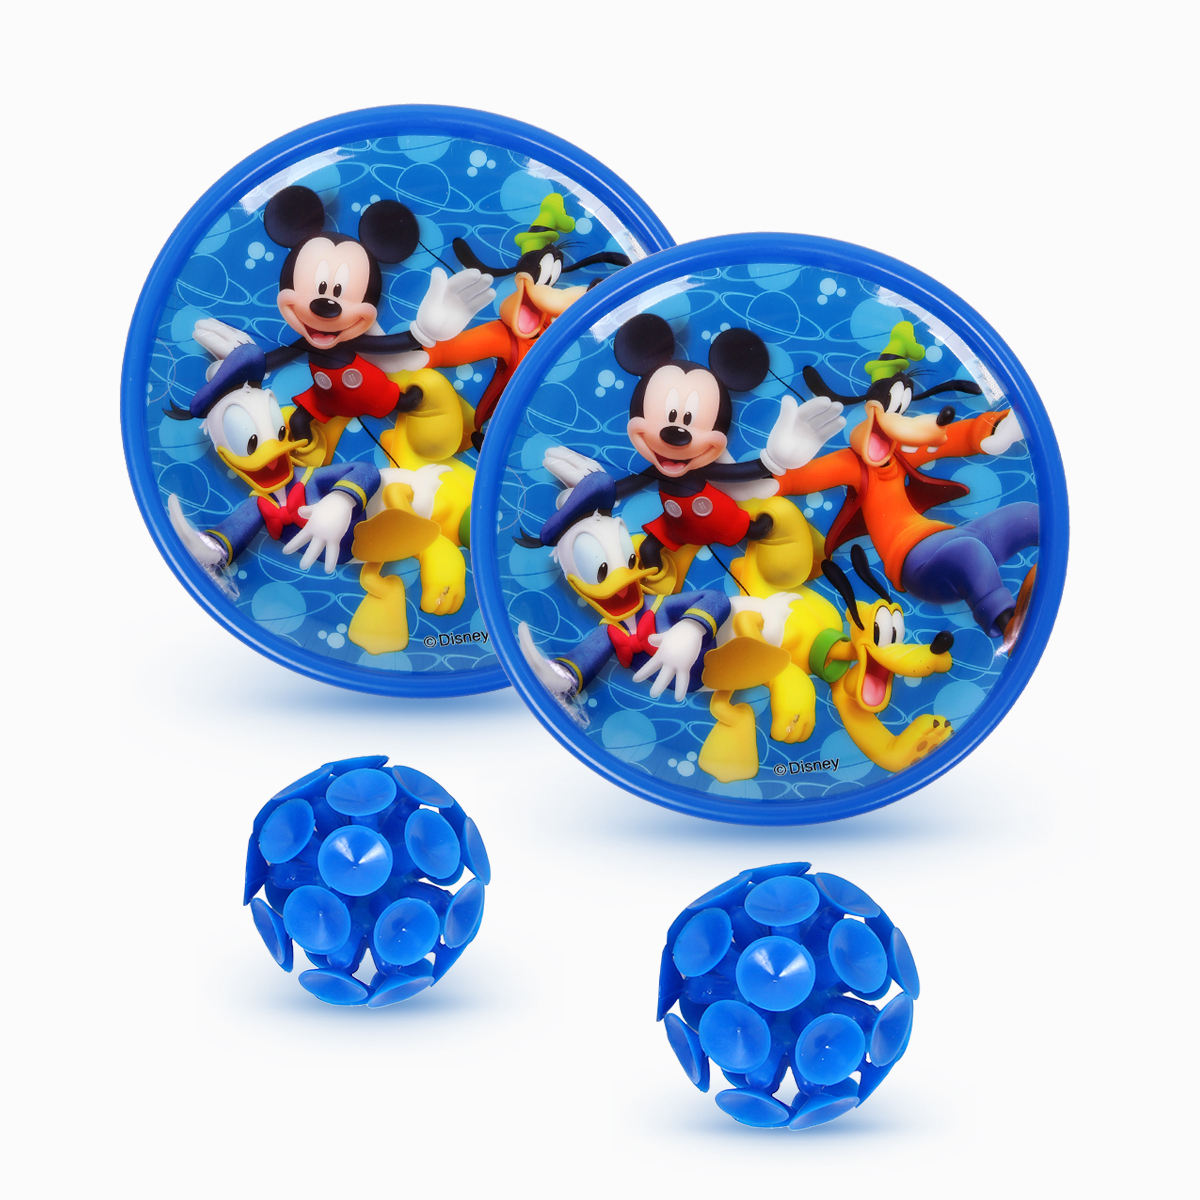 New Arrival Disney Kids Playing Catch Ball Game Flashing Catch Ball Set Mickey Mouse